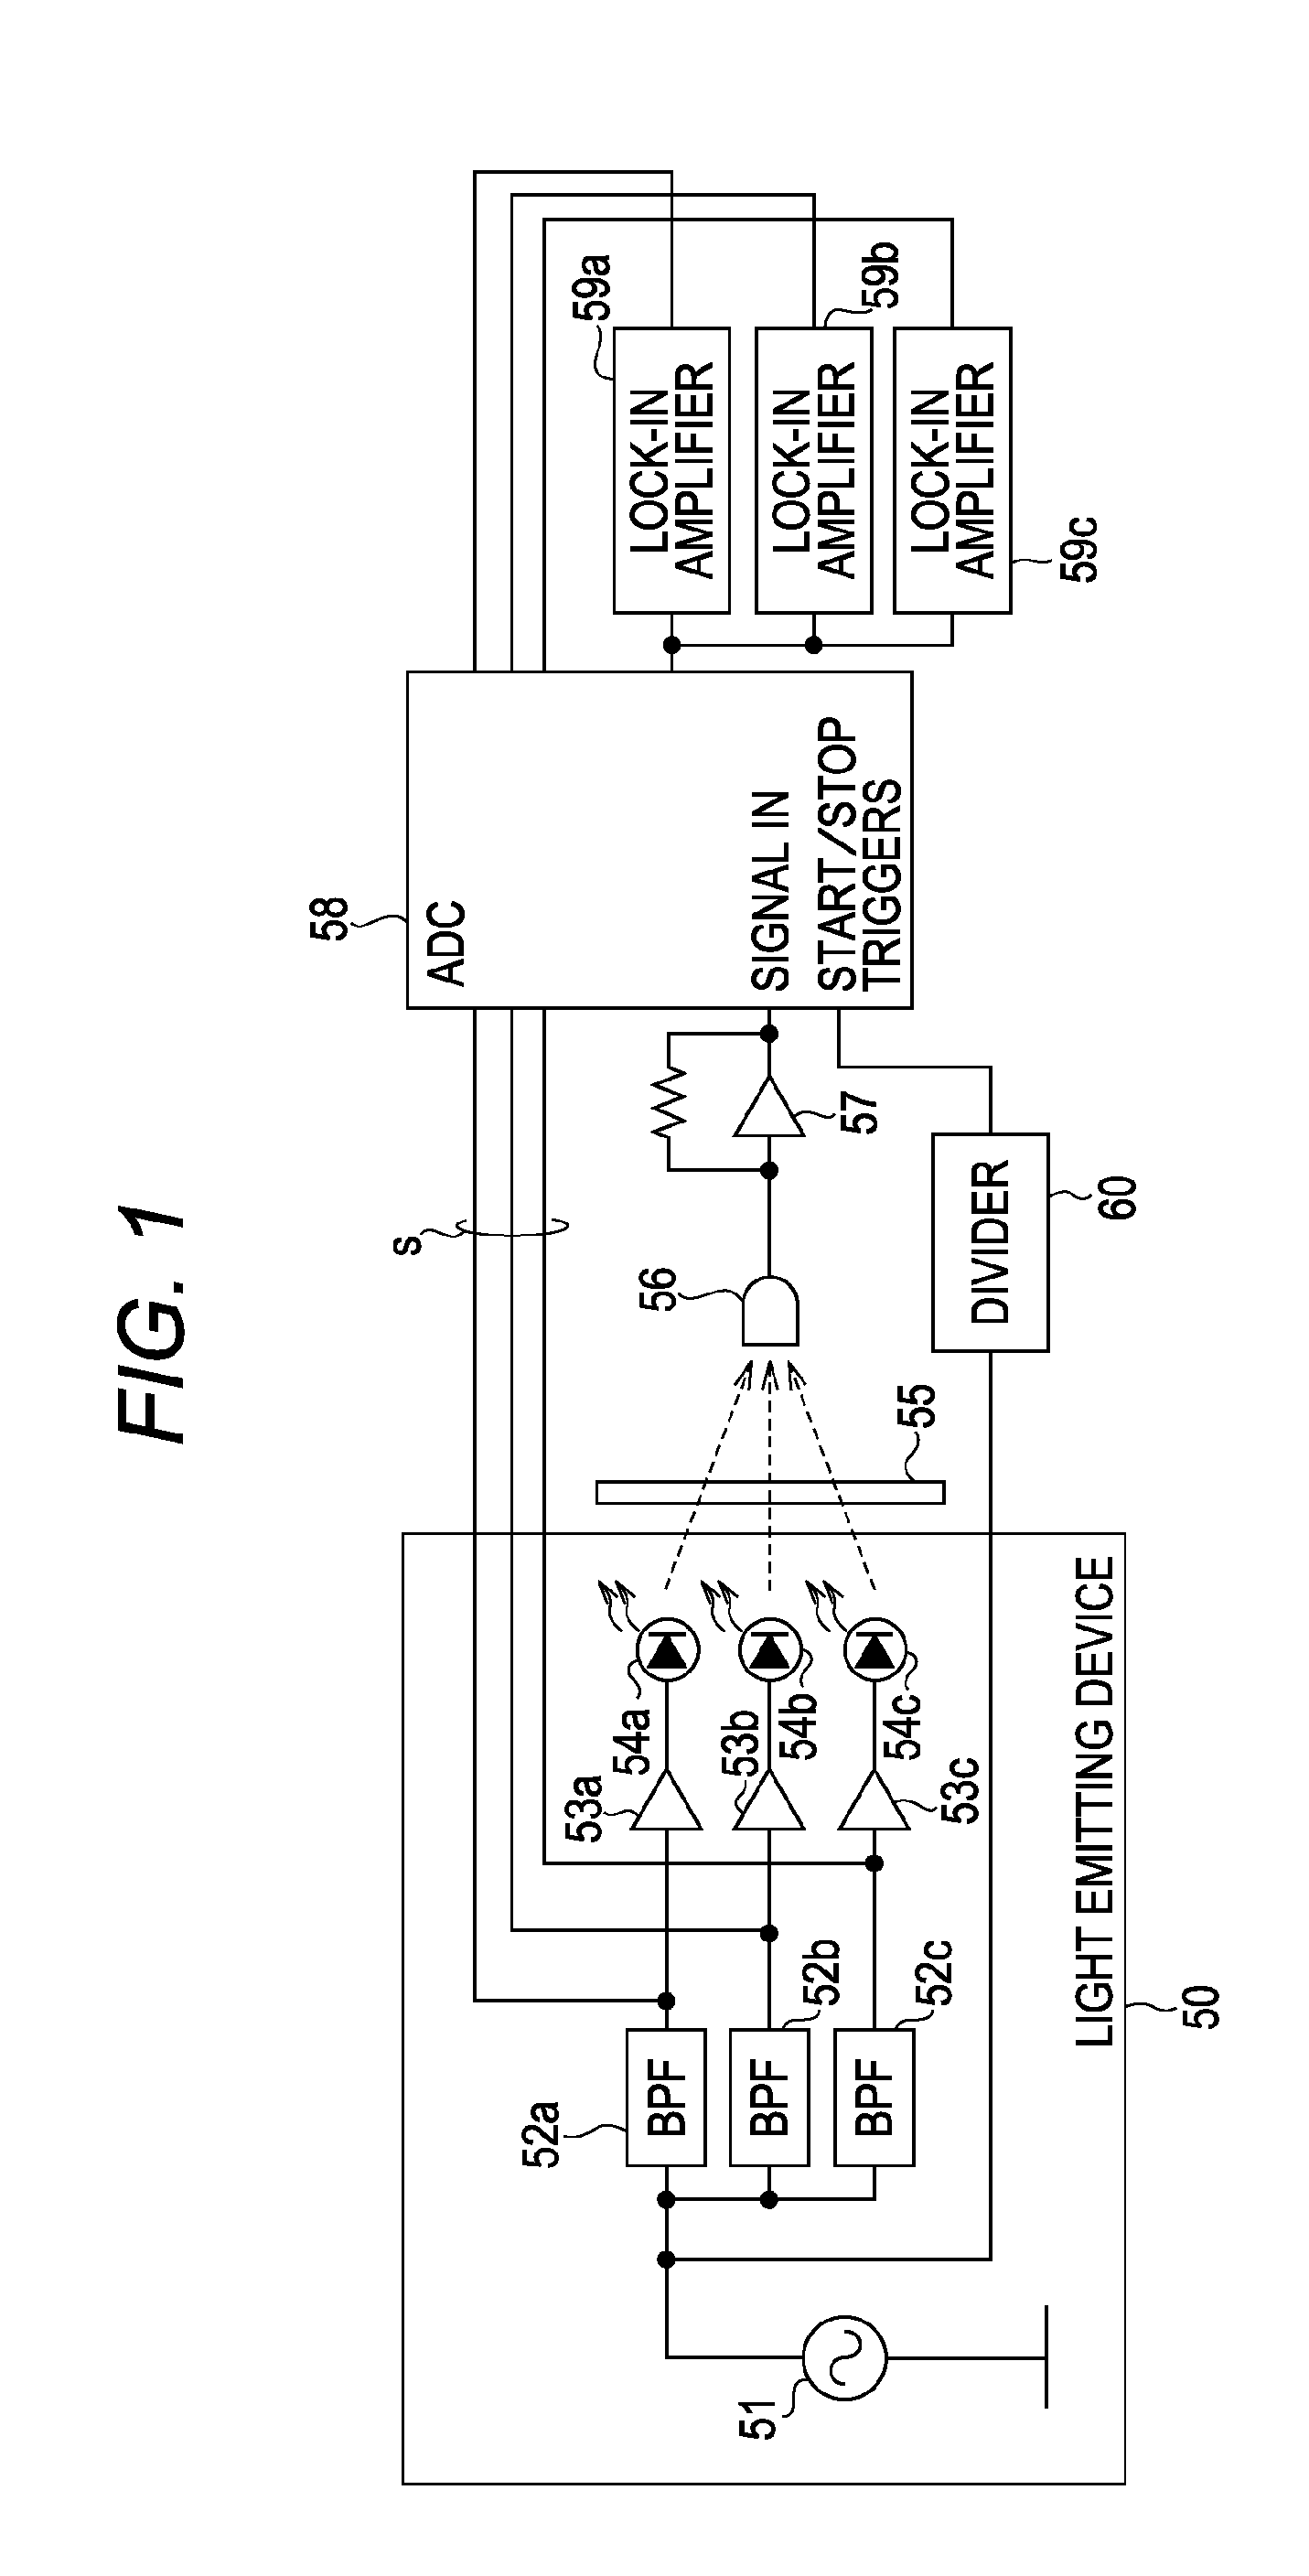 Patent Us8547544 Multichannel Photometric Measurement Apparatus Lockin Amplifierj Drawing